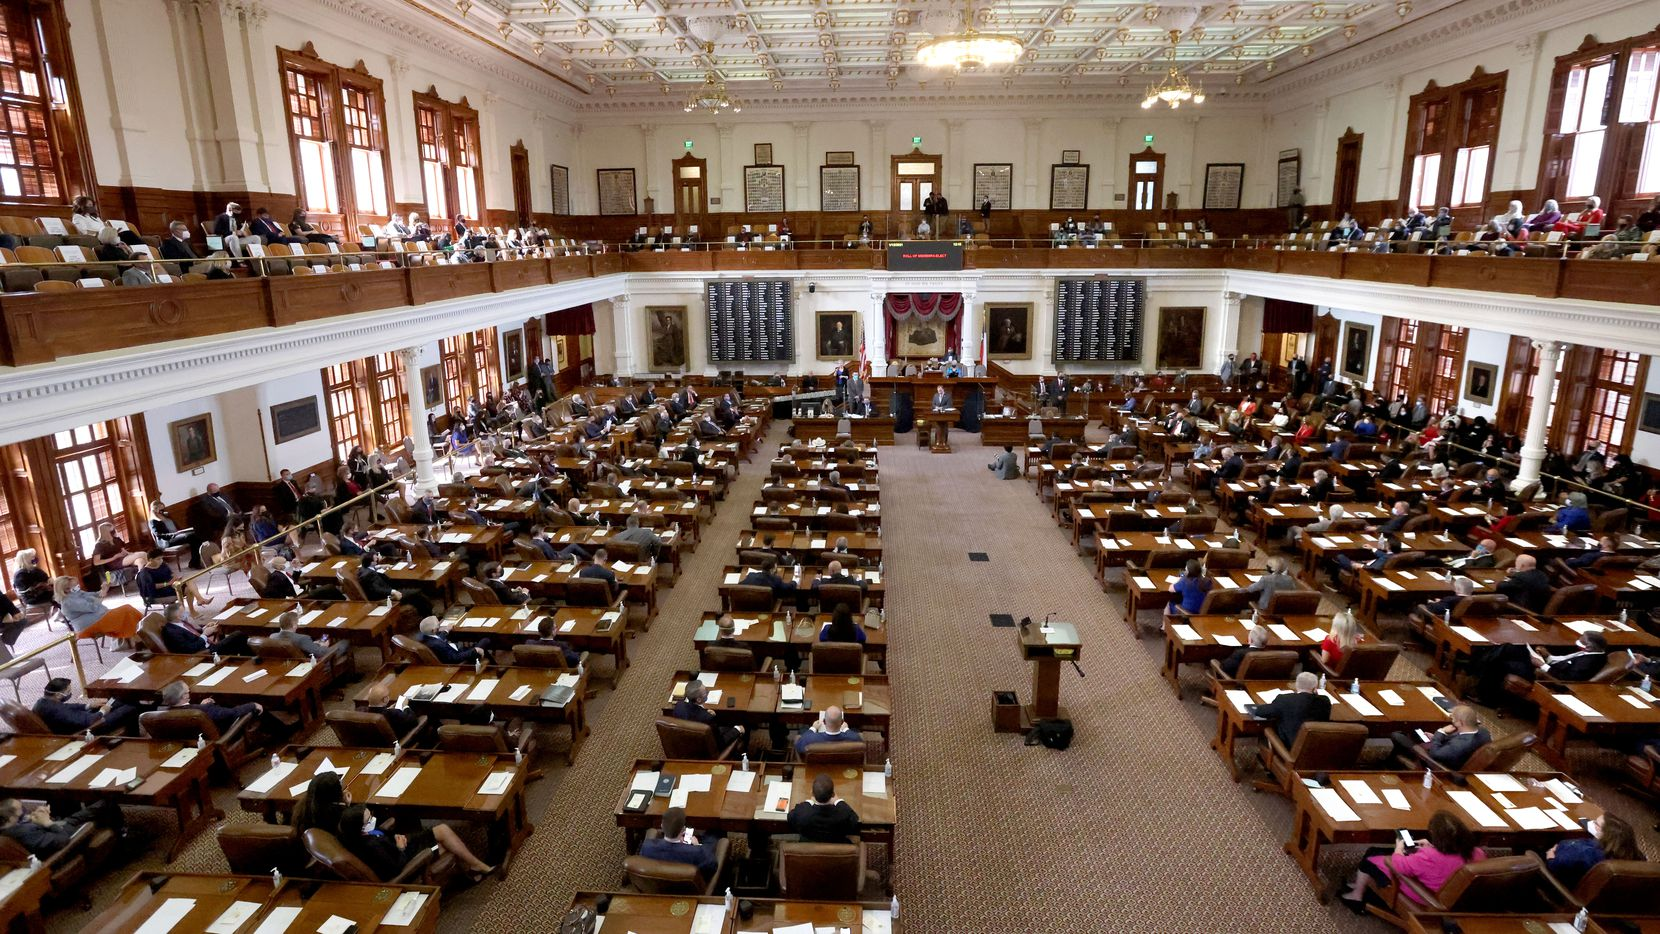 The 87th Texas Legislature is called into session at the Texas Capitol building in Austin, Texas, on Tuesday, Jan. 12, 2021. A new survey shows Texans want lawmakers to exhibit civility and progress. (Lynda M. González/The Dallas Morning News)